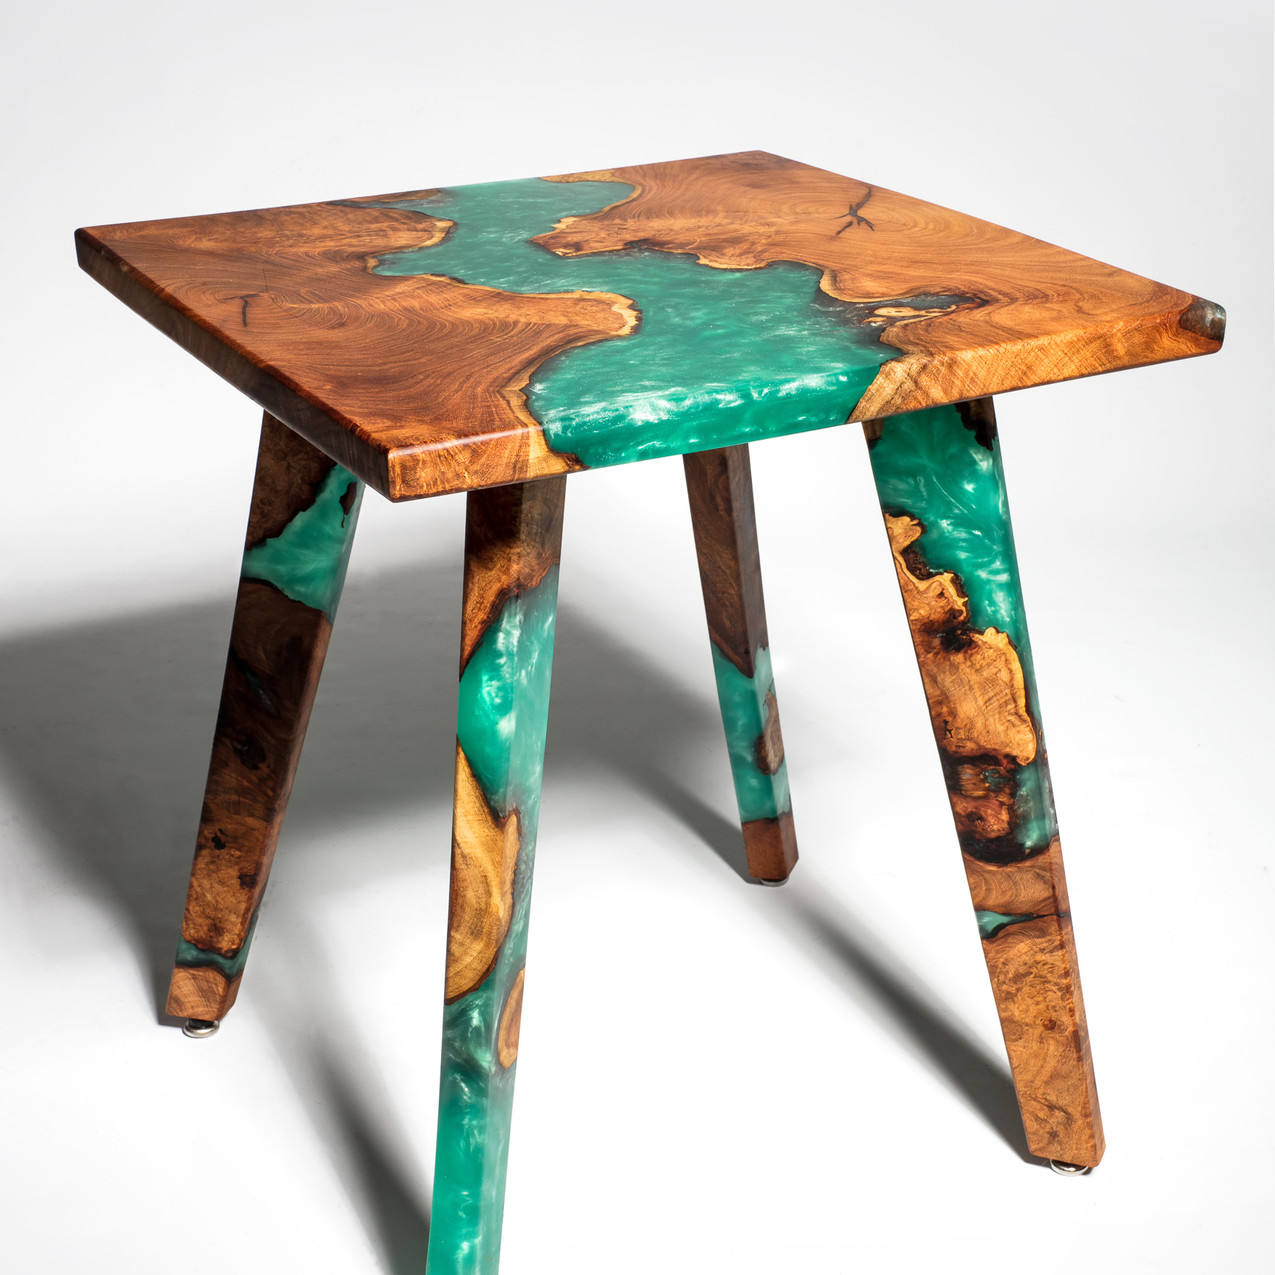 Mesquite Resin River End Table made from reclaimed urban mesquite burl slabs and ecofriendly plant based food safe resin.